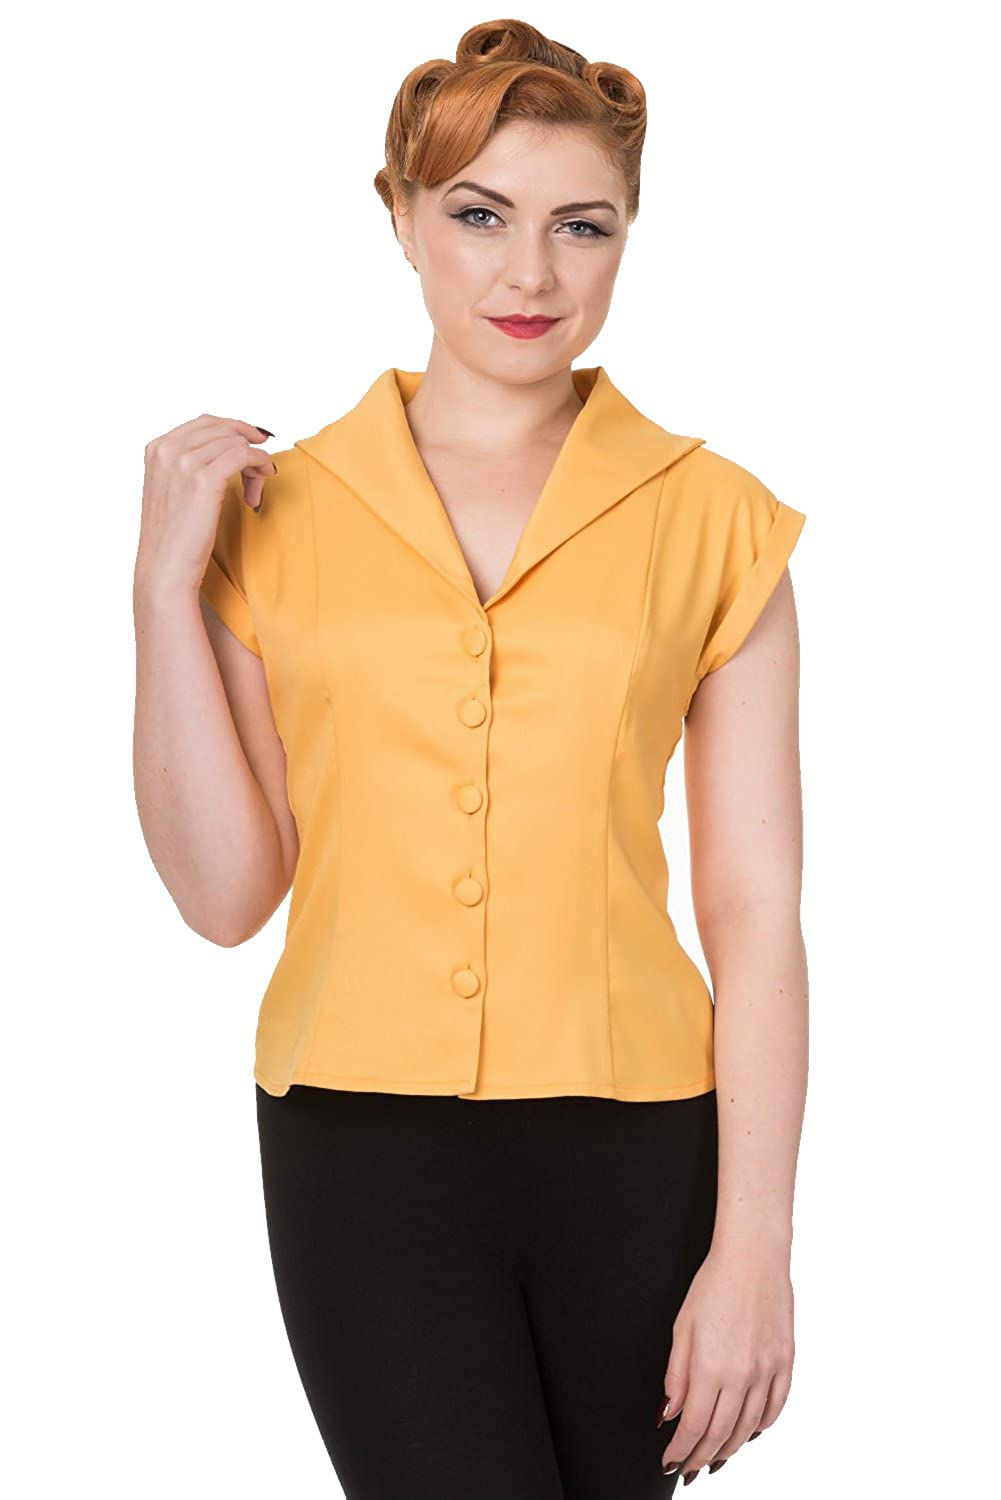 Banned Women's Blouse